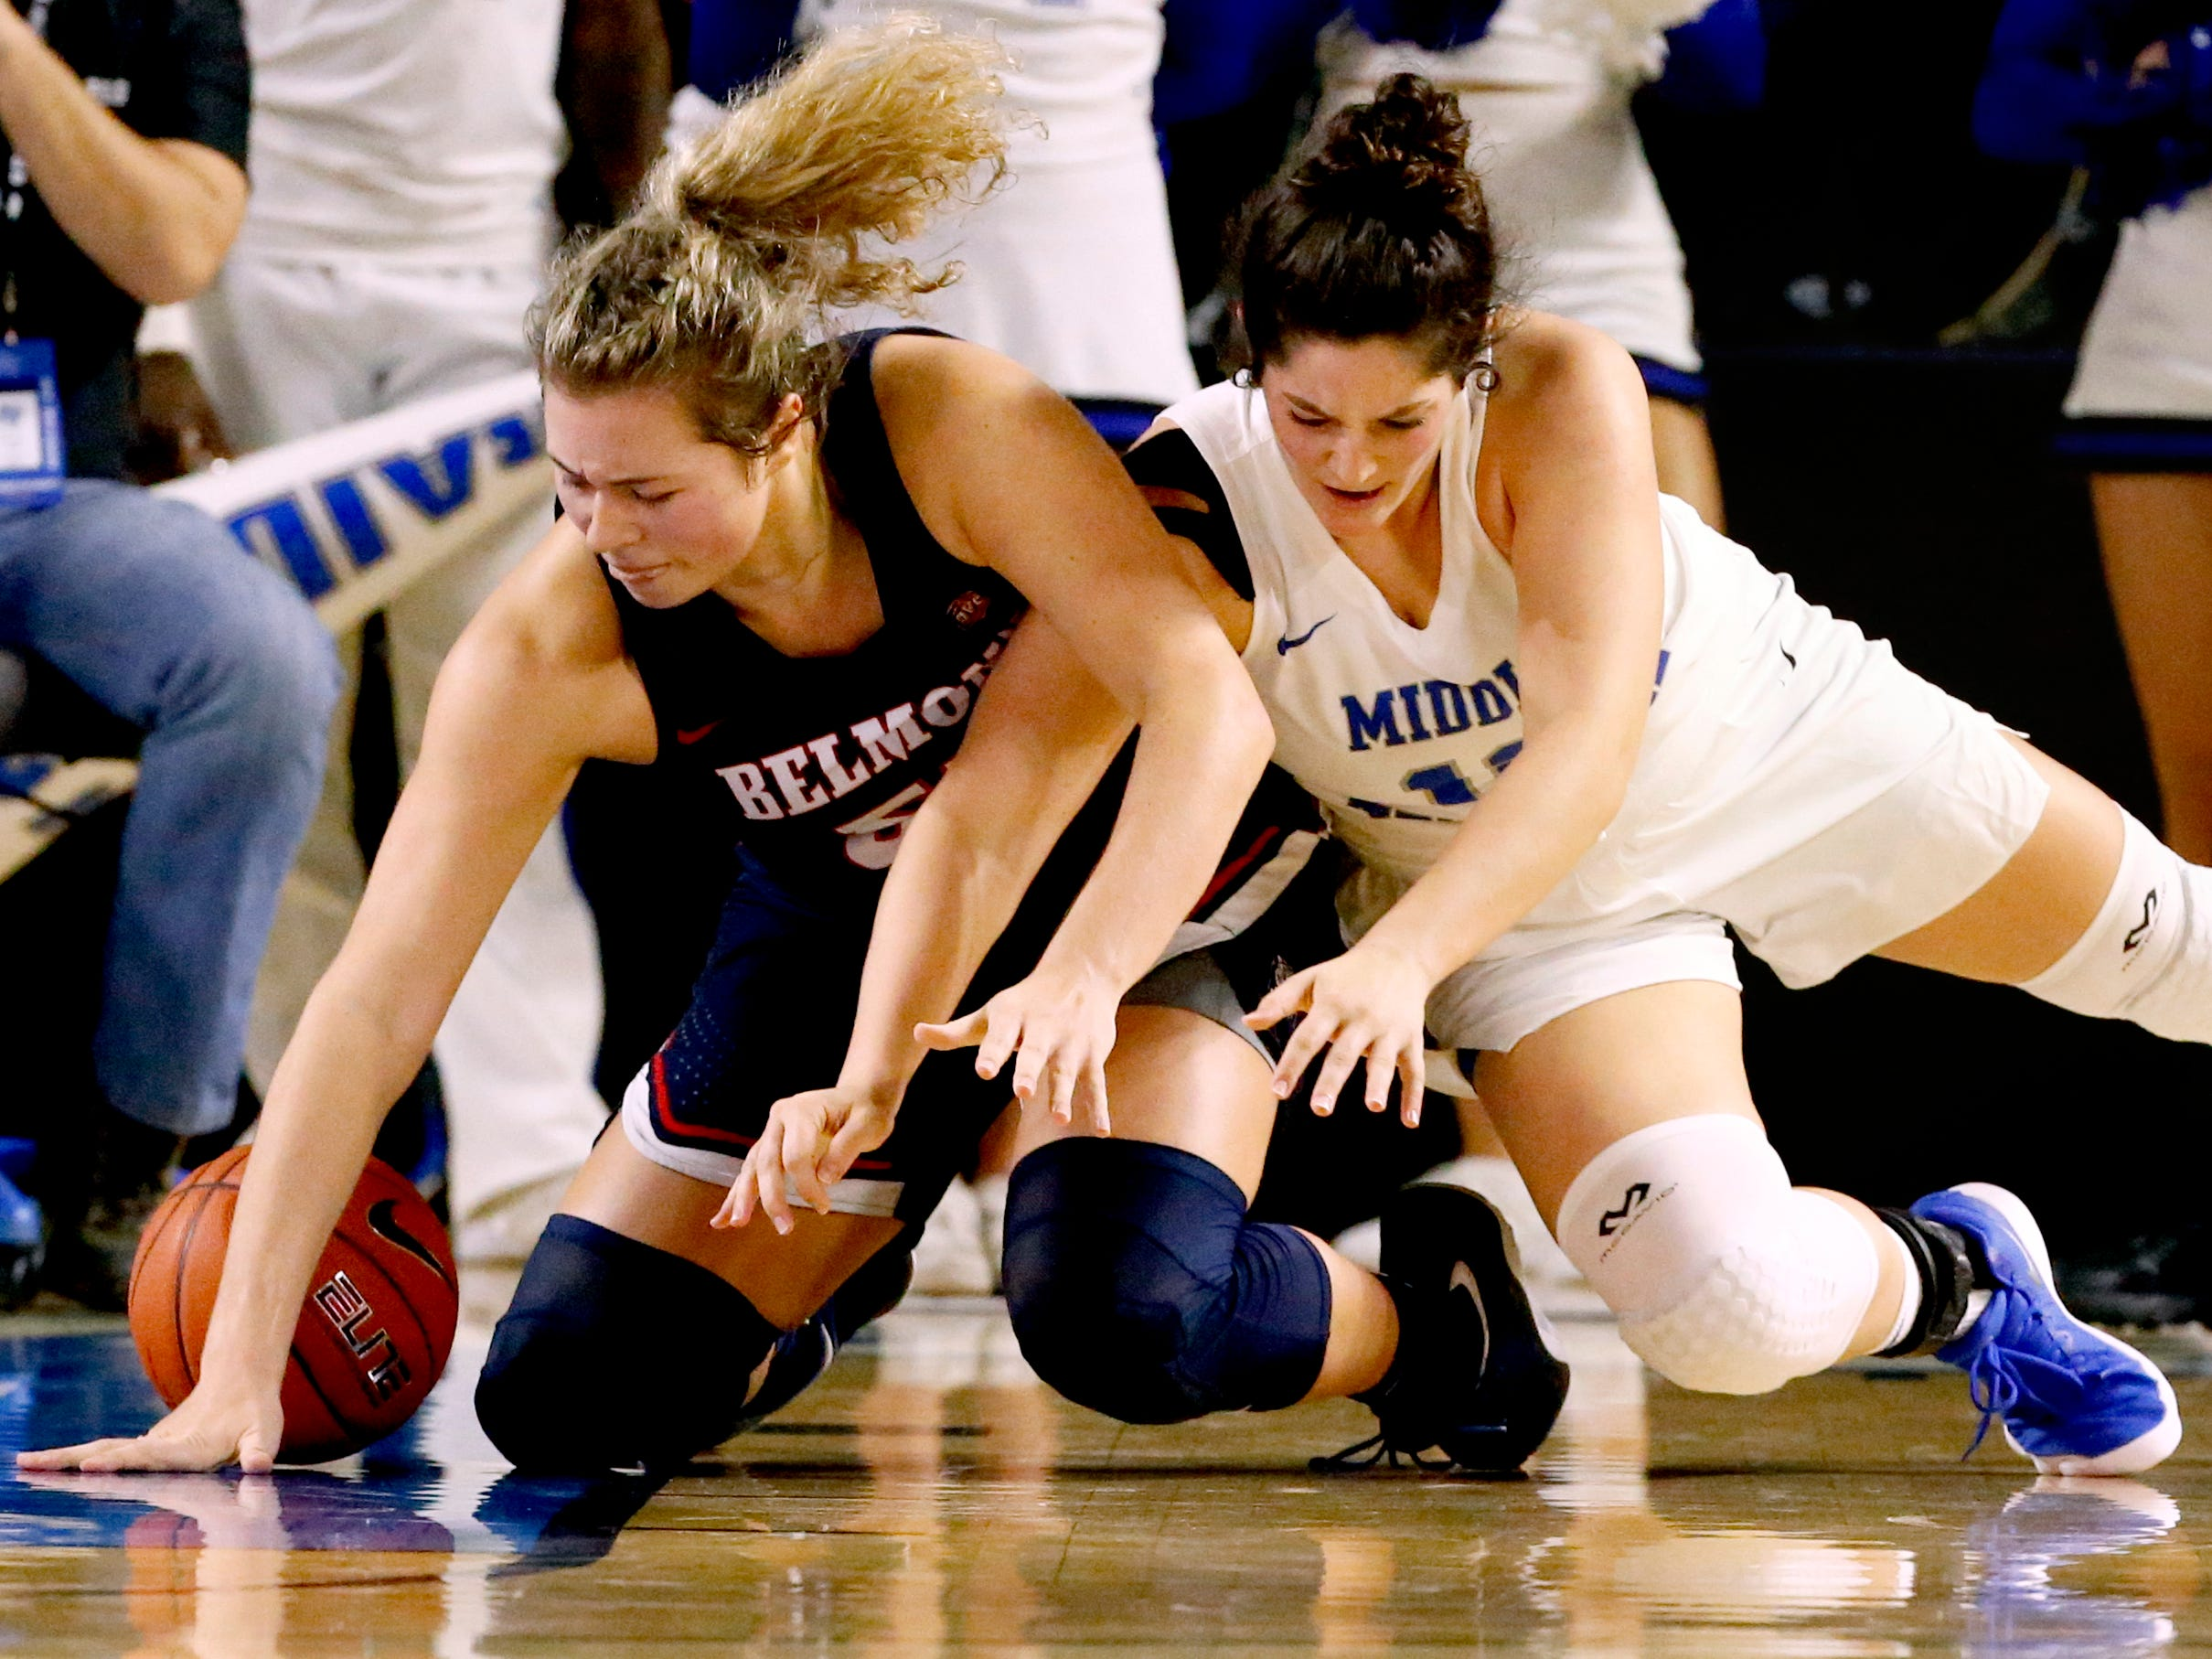 Belmont's Maddie Wright (55) and MTSU's Jess Louro (12) both go after a loose ball during the game at MTSU on Monday, Nov. 19, 2018.